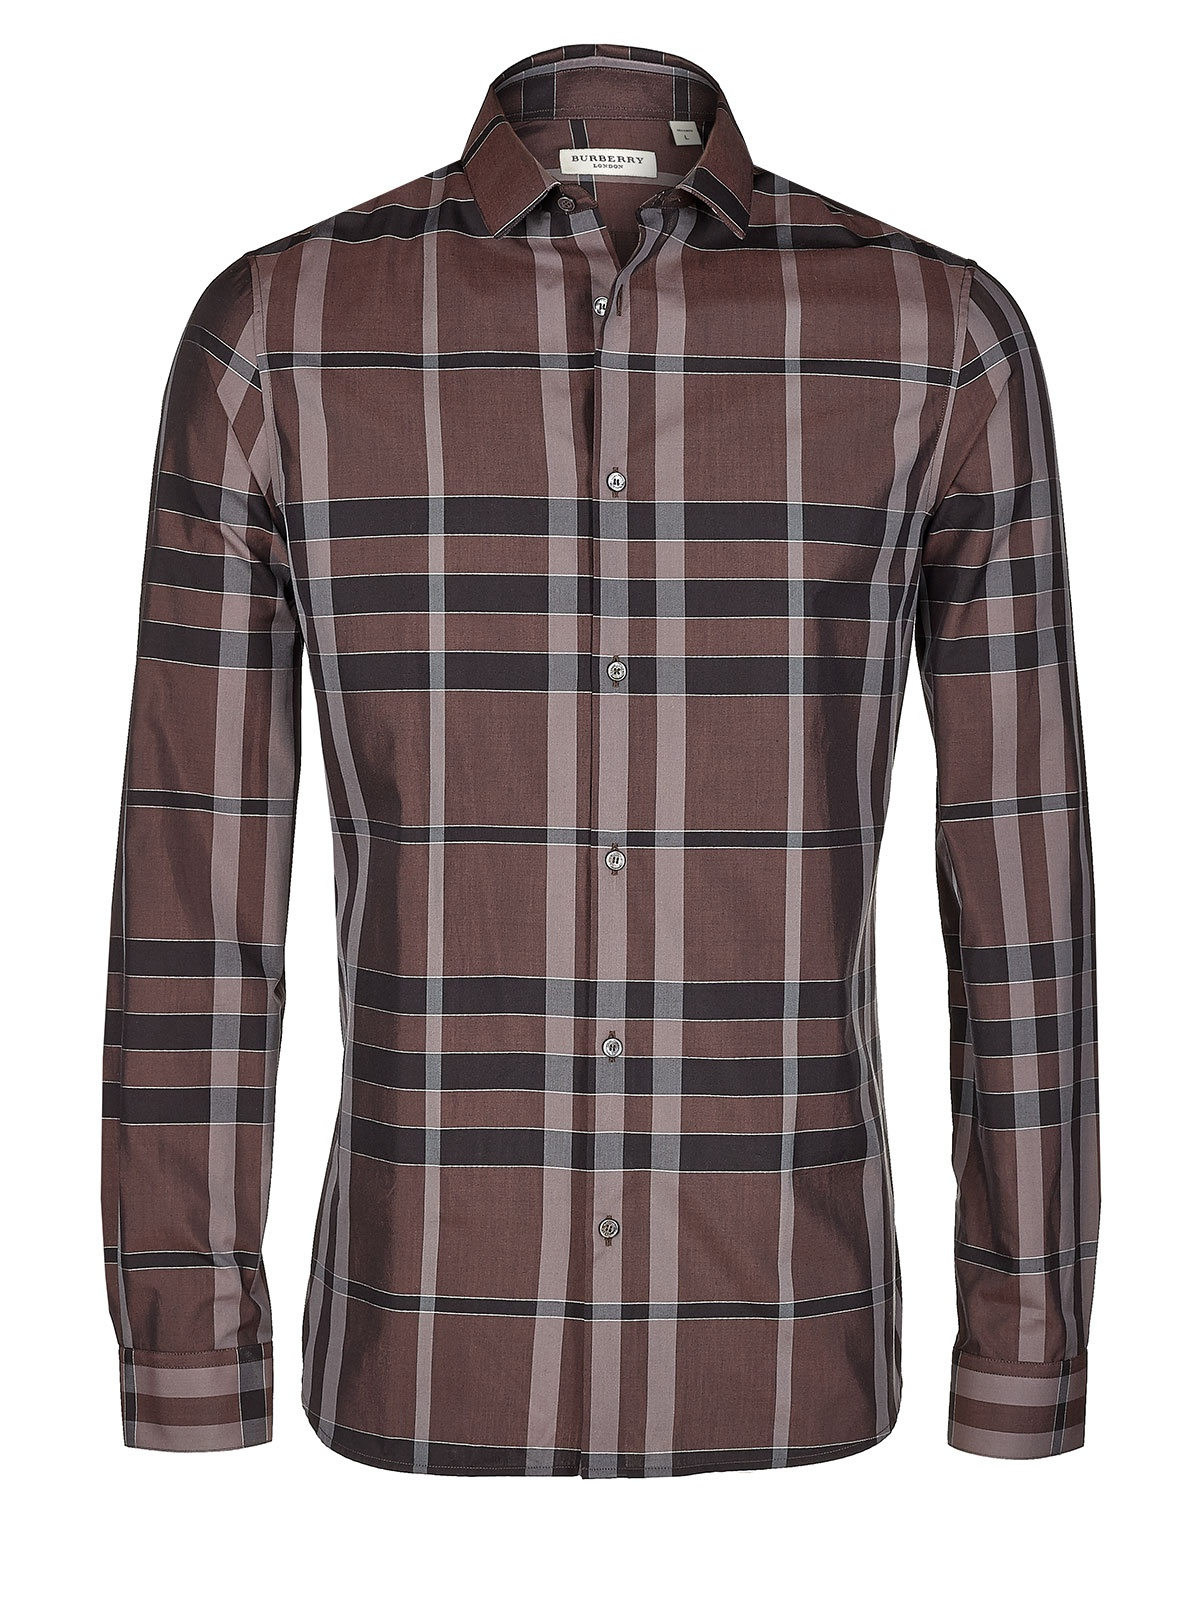 burberry shirt plaid in brown for men lyst. Black Bedroom Furniture Sets. Home Design Ideas